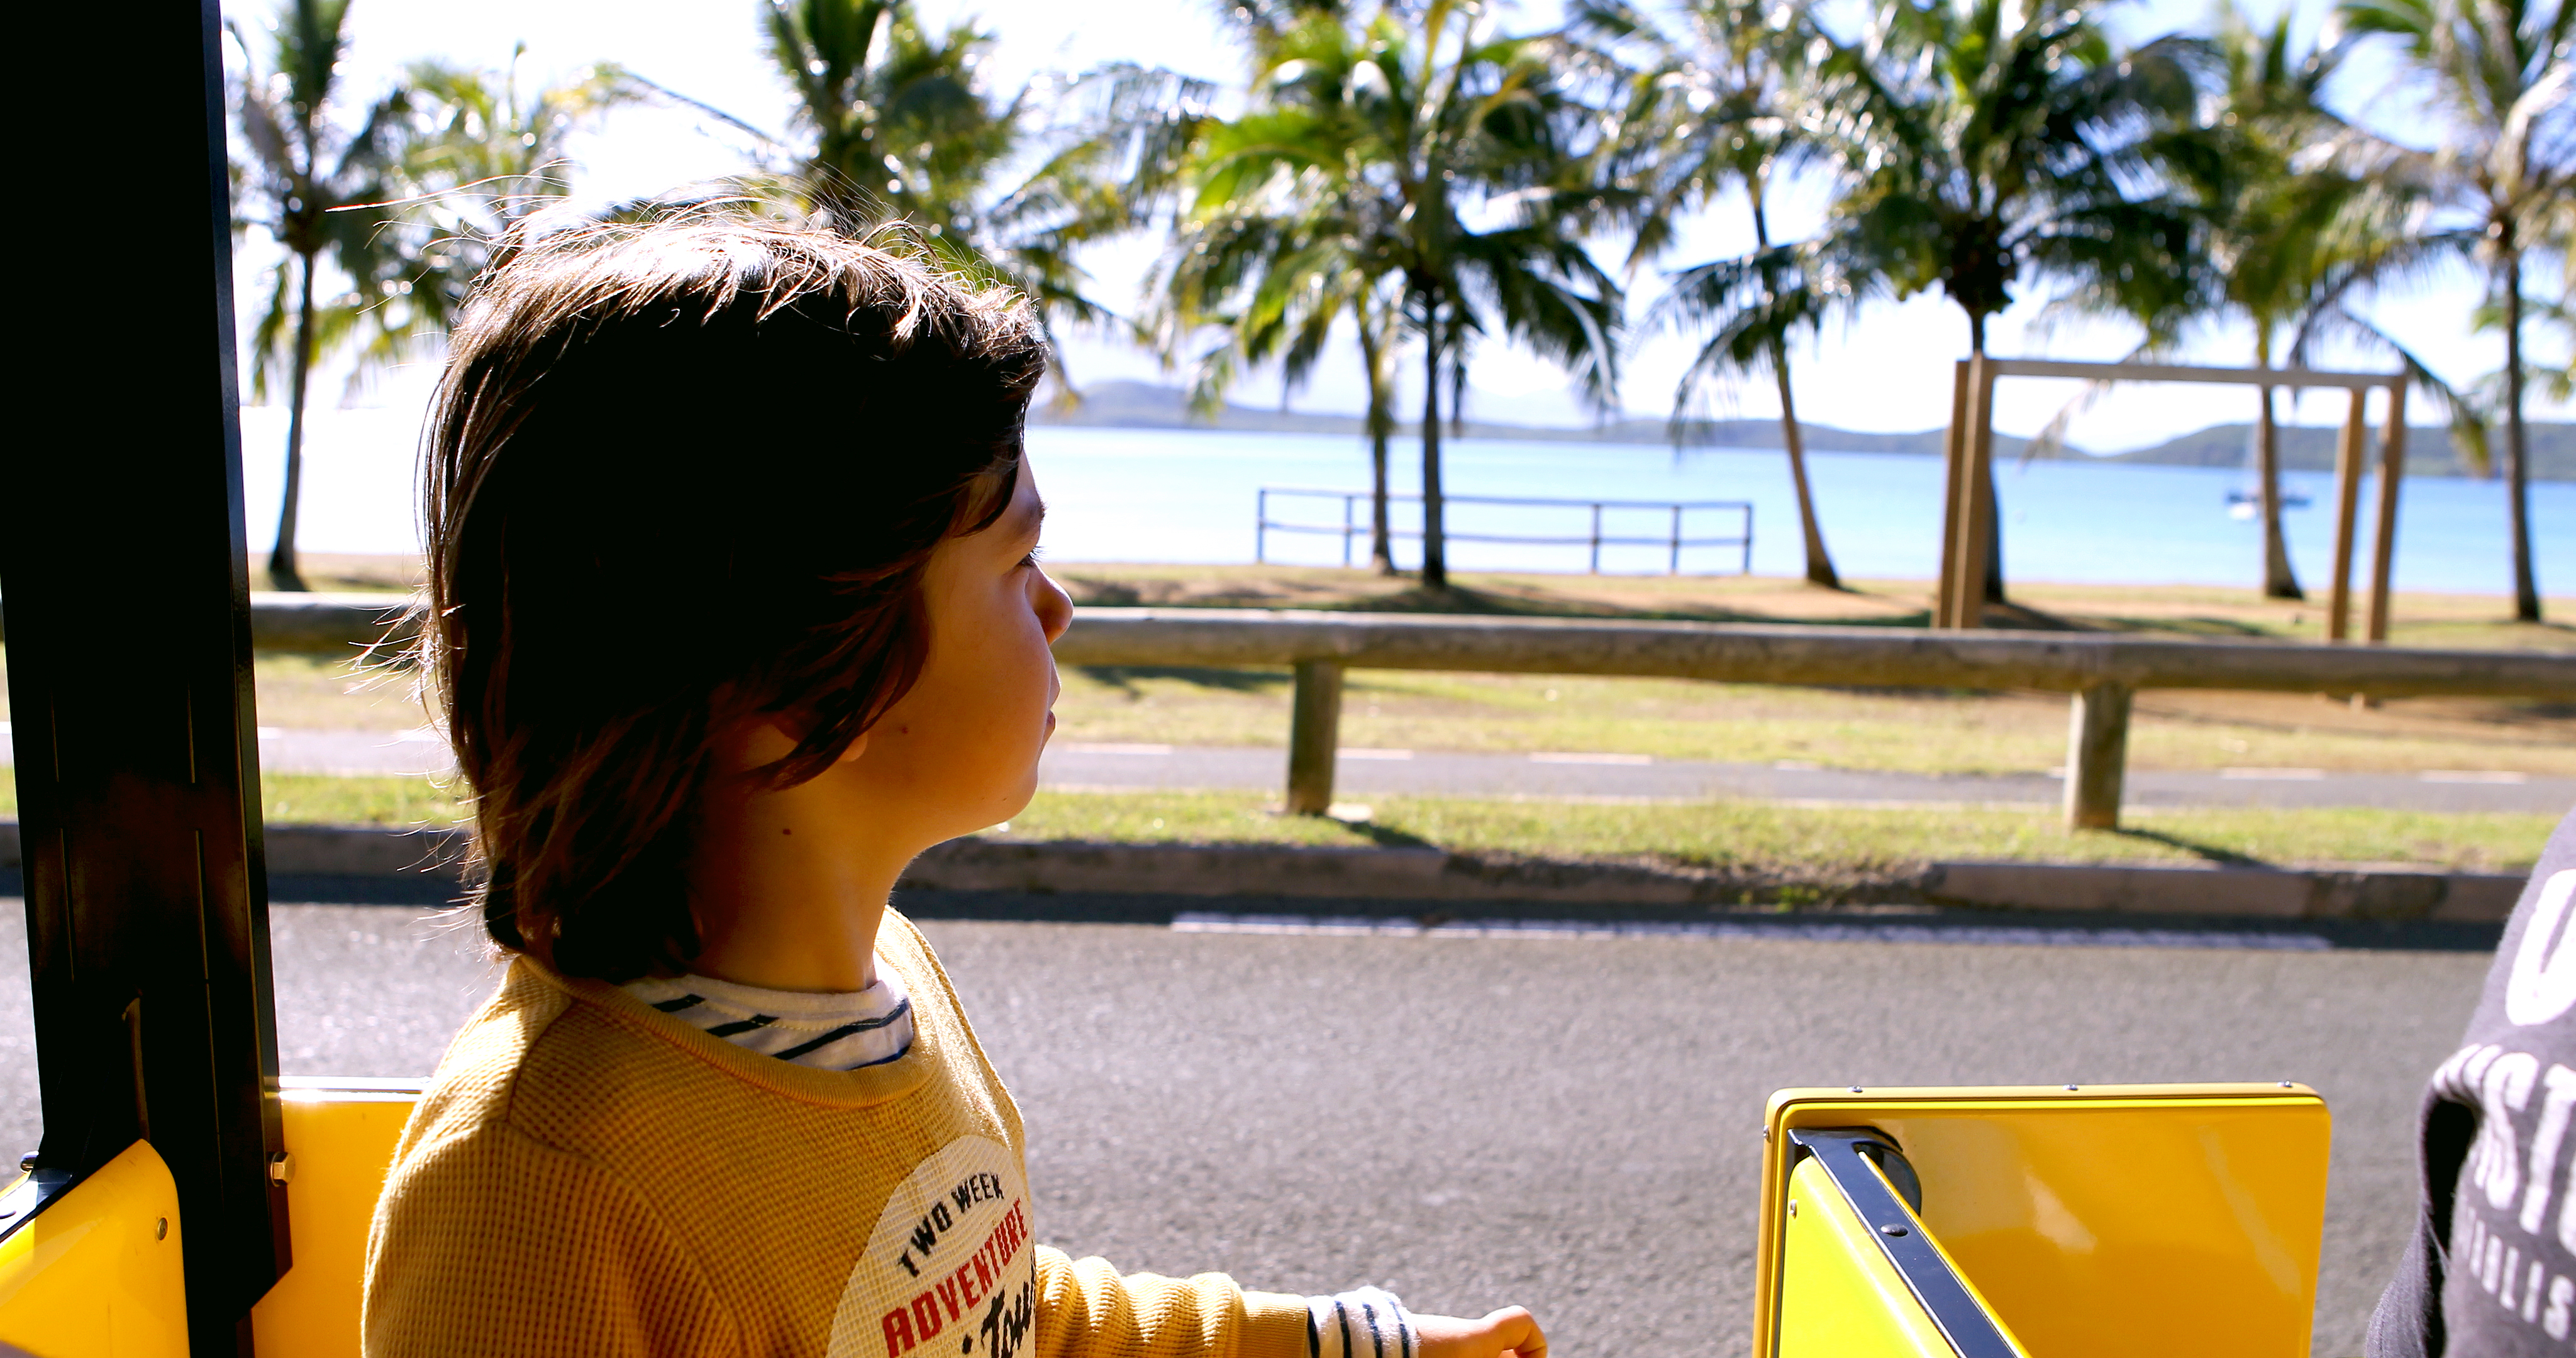 tchou-tchou-train-ride-noumea-travelling-with-kids-1